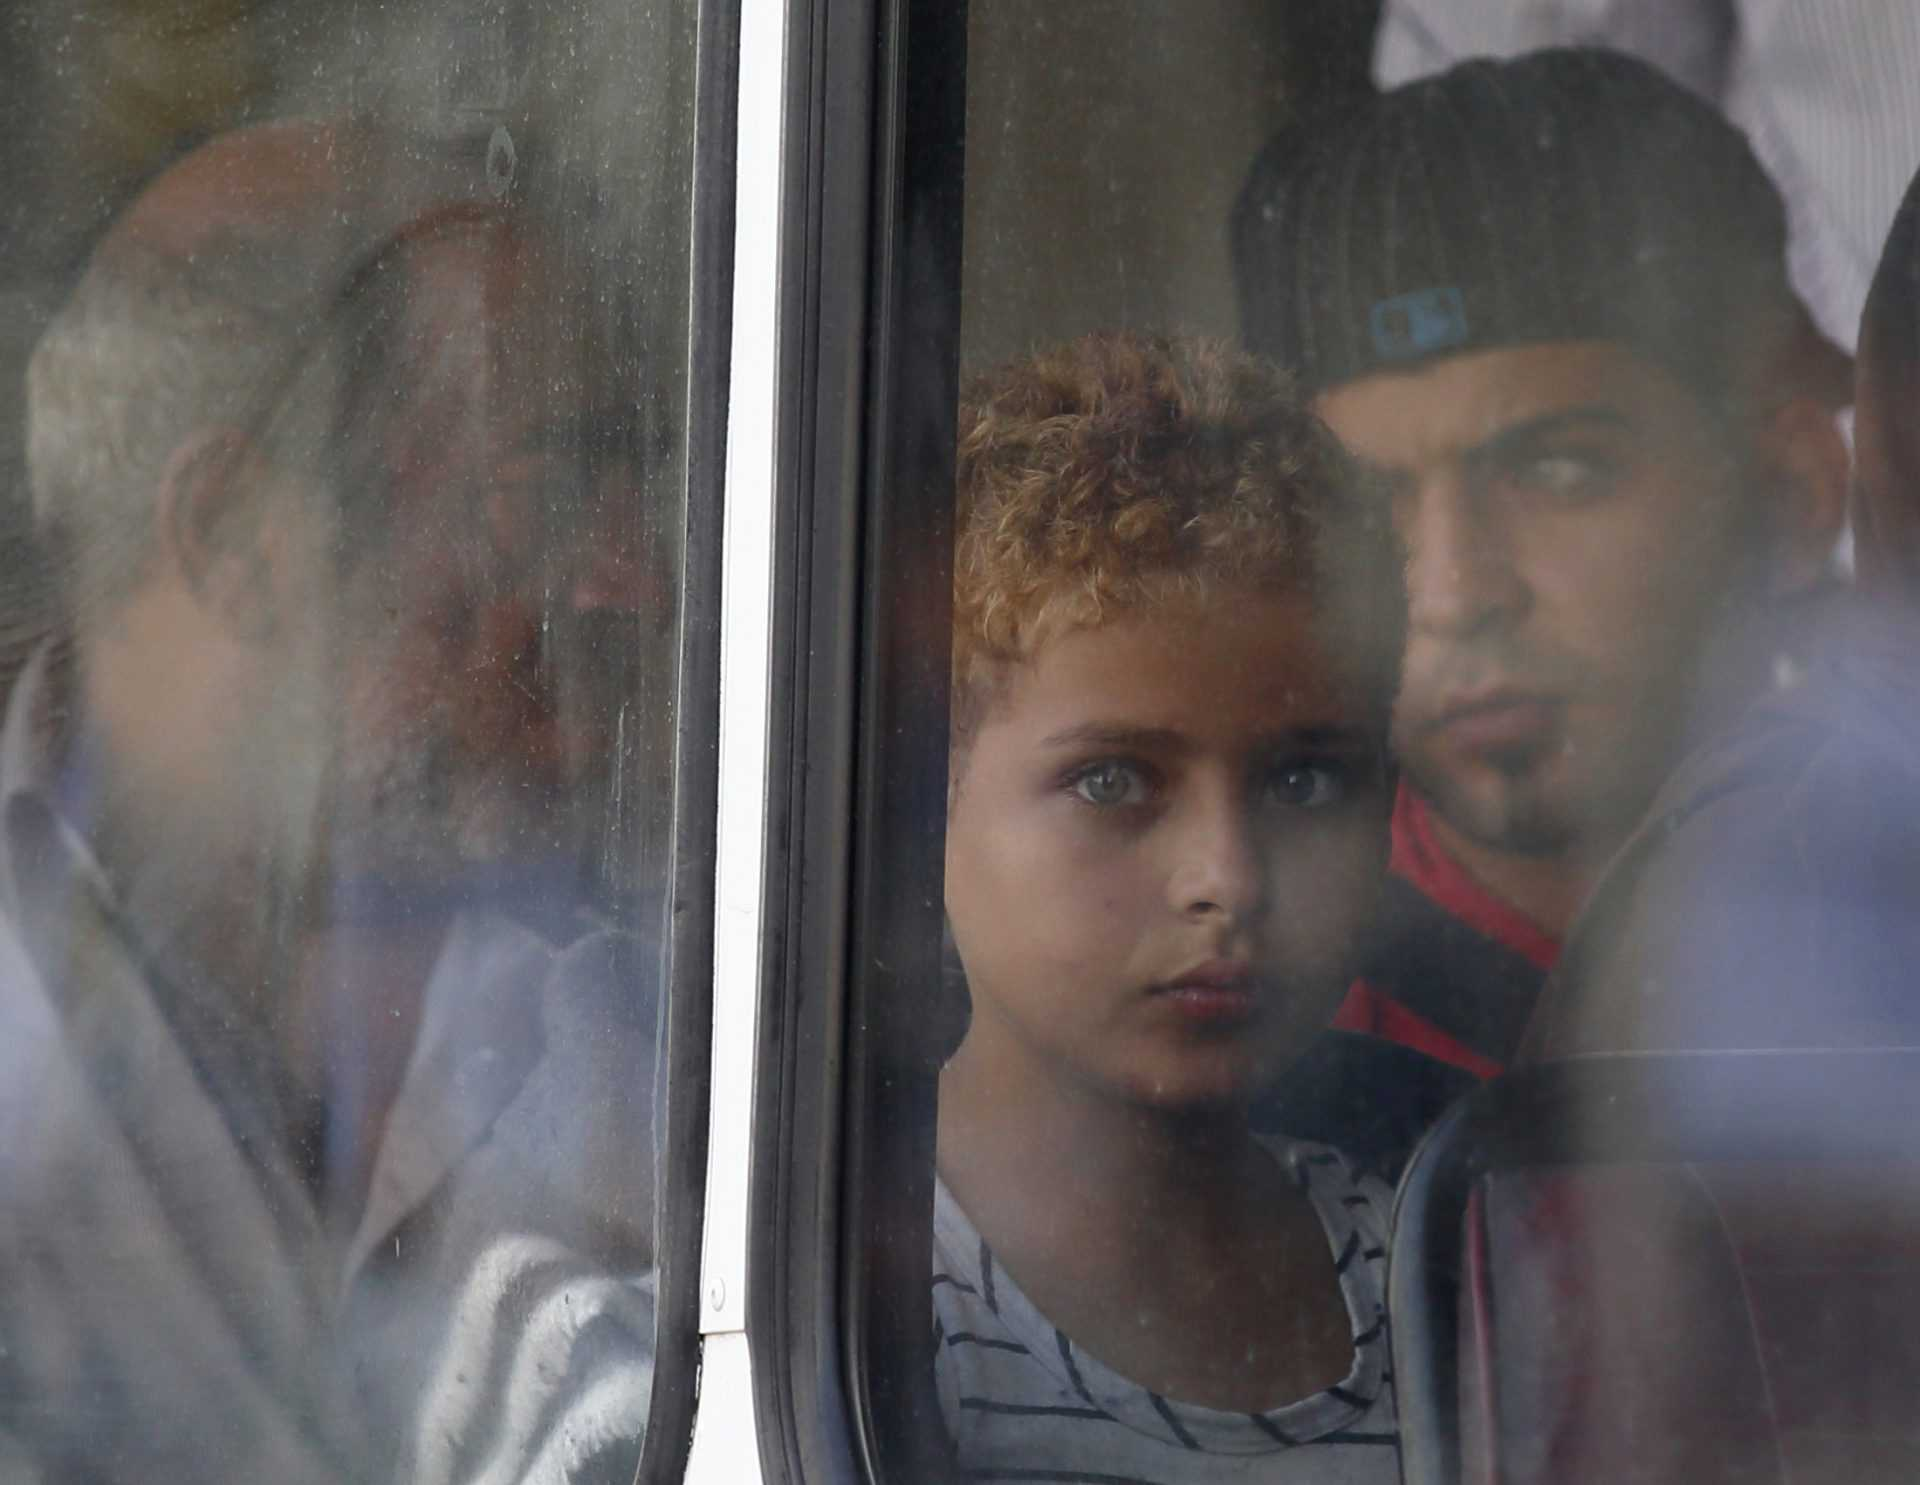 A rescued migrant child looks out of the window of a police bus after arriving at the Armed Forces of Malta Maritime Squadron base at Haywharf in Valletta's Marsamxett Harbour October 12, 2013. Dozens of people died on Friday when a boat carrying around 250 migrants capsized between Sicily and Tunisia, in the second such shipwreck this month, the Italian coastguard said. 147 survivors, believed to all be Syrians, arrived in Malta on Saturday morning, according to local media.  REUTERS/Darrin Zammit Lupi (MALTA - Tags: SOCIETY IMMIGRATION DISASTER) MALTA OUT. NO COMMERCIAL OR EDITORIAL SALES IN MALTA - RTX148LH